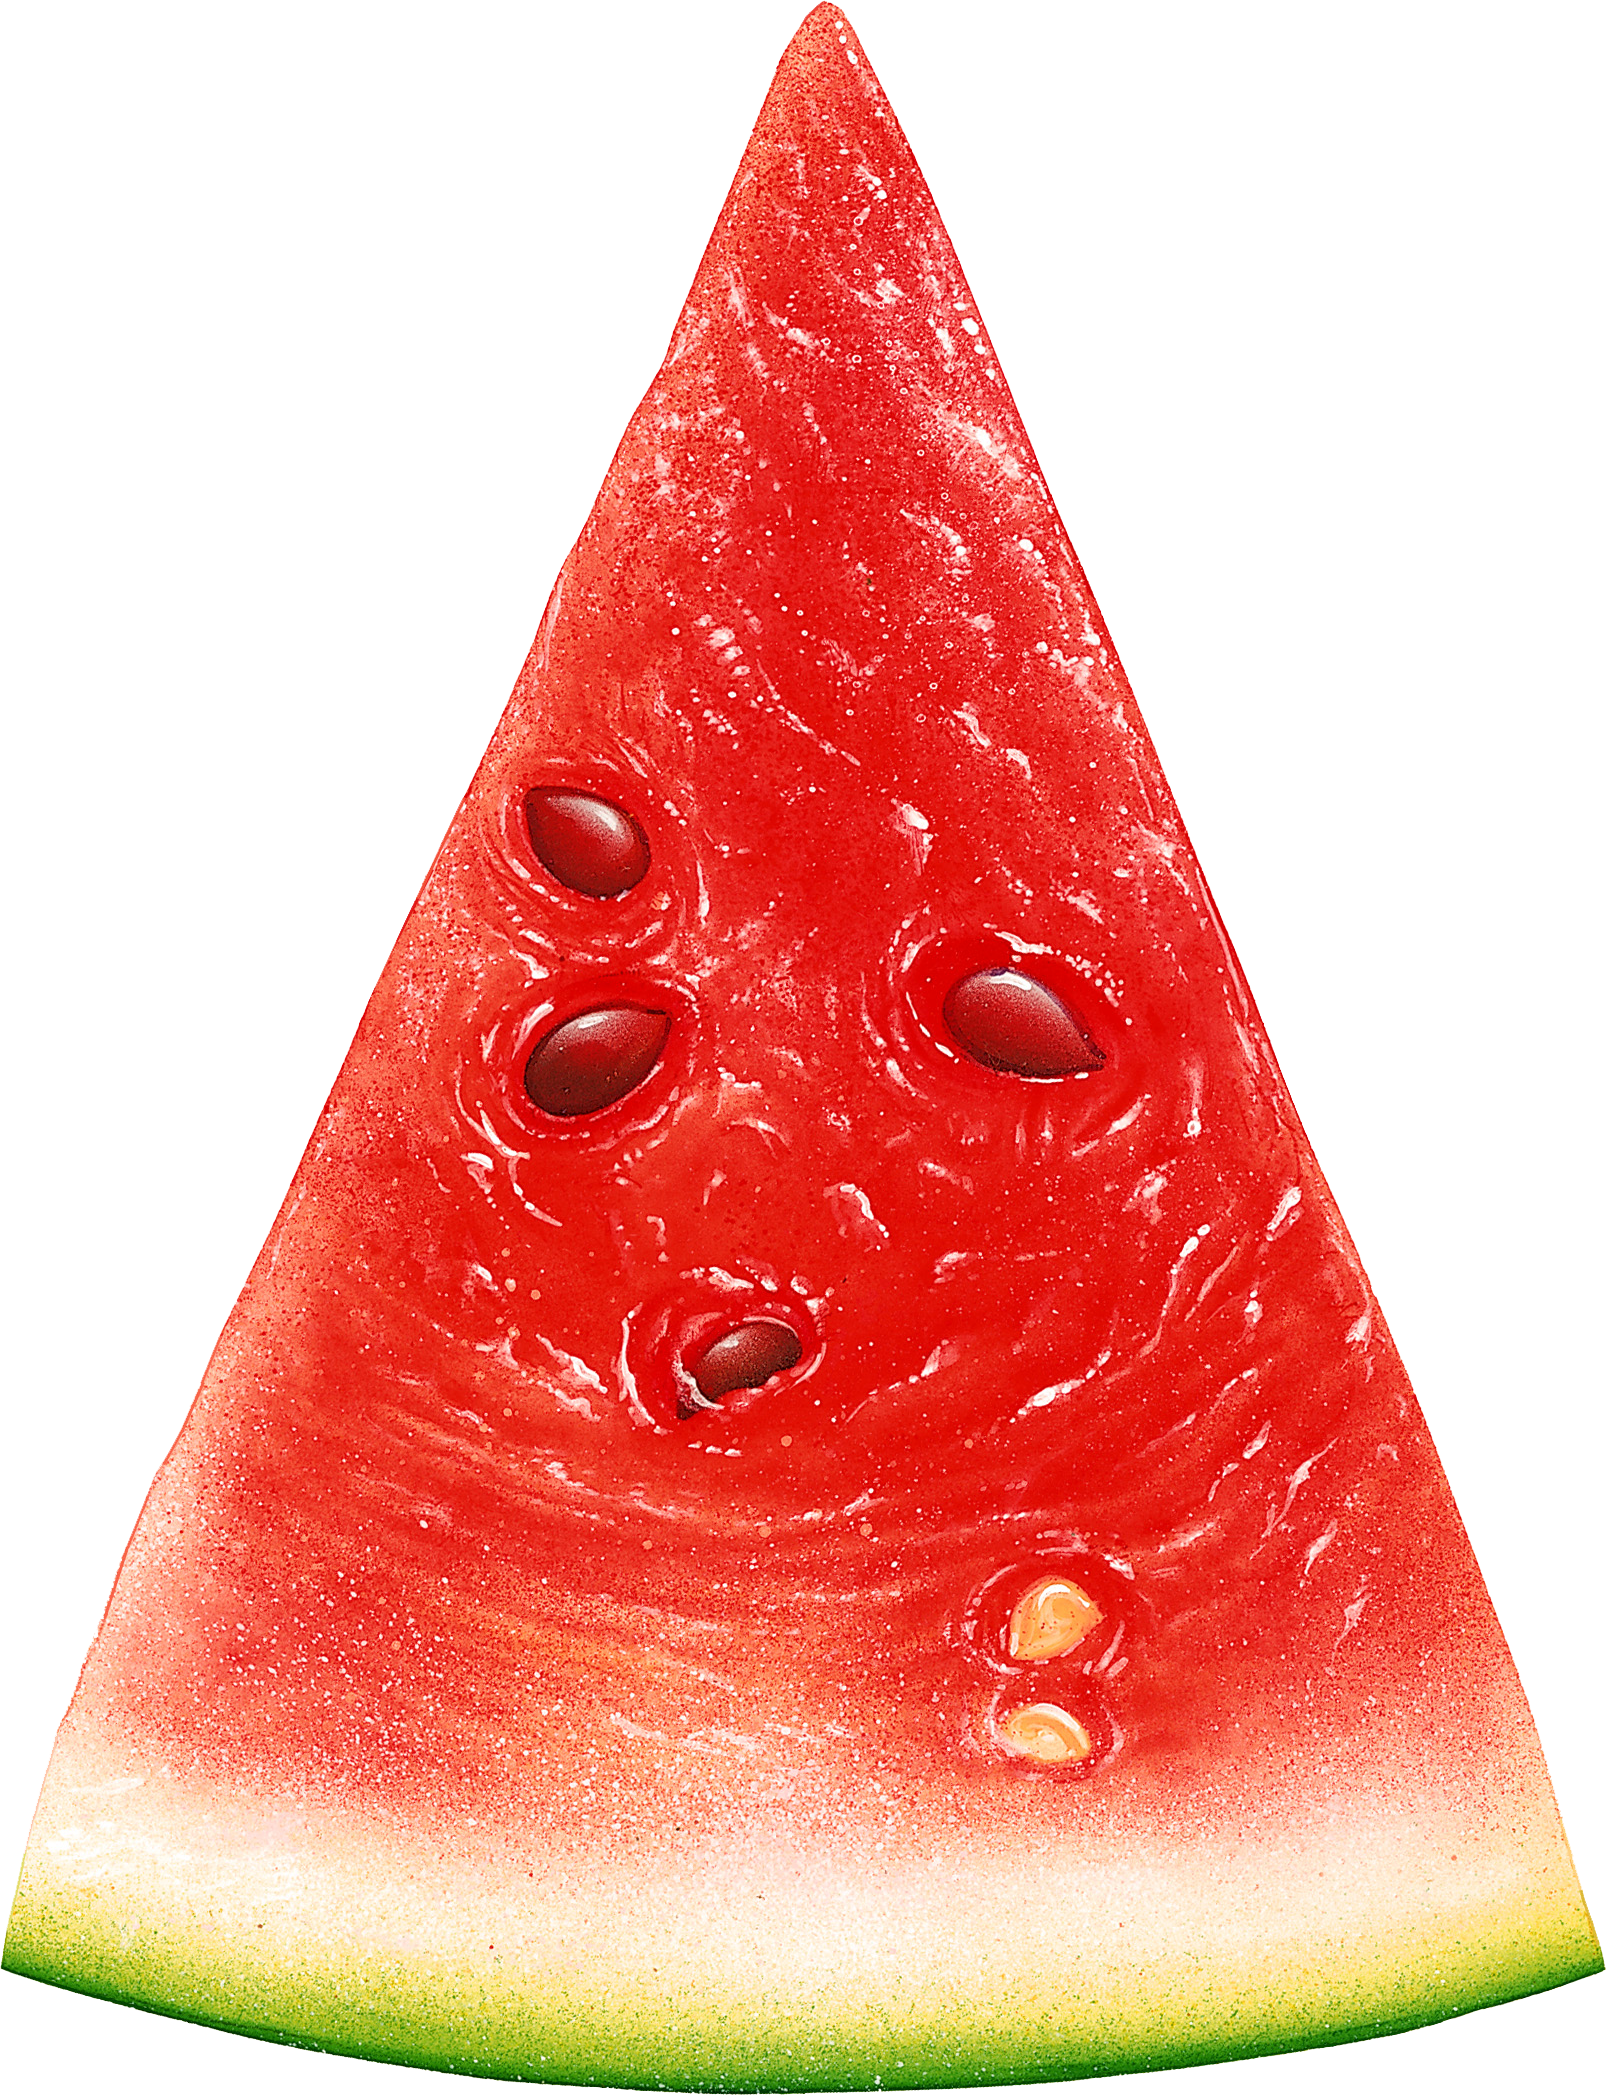 Watermelon clipart watermelon wedge. Png images free download